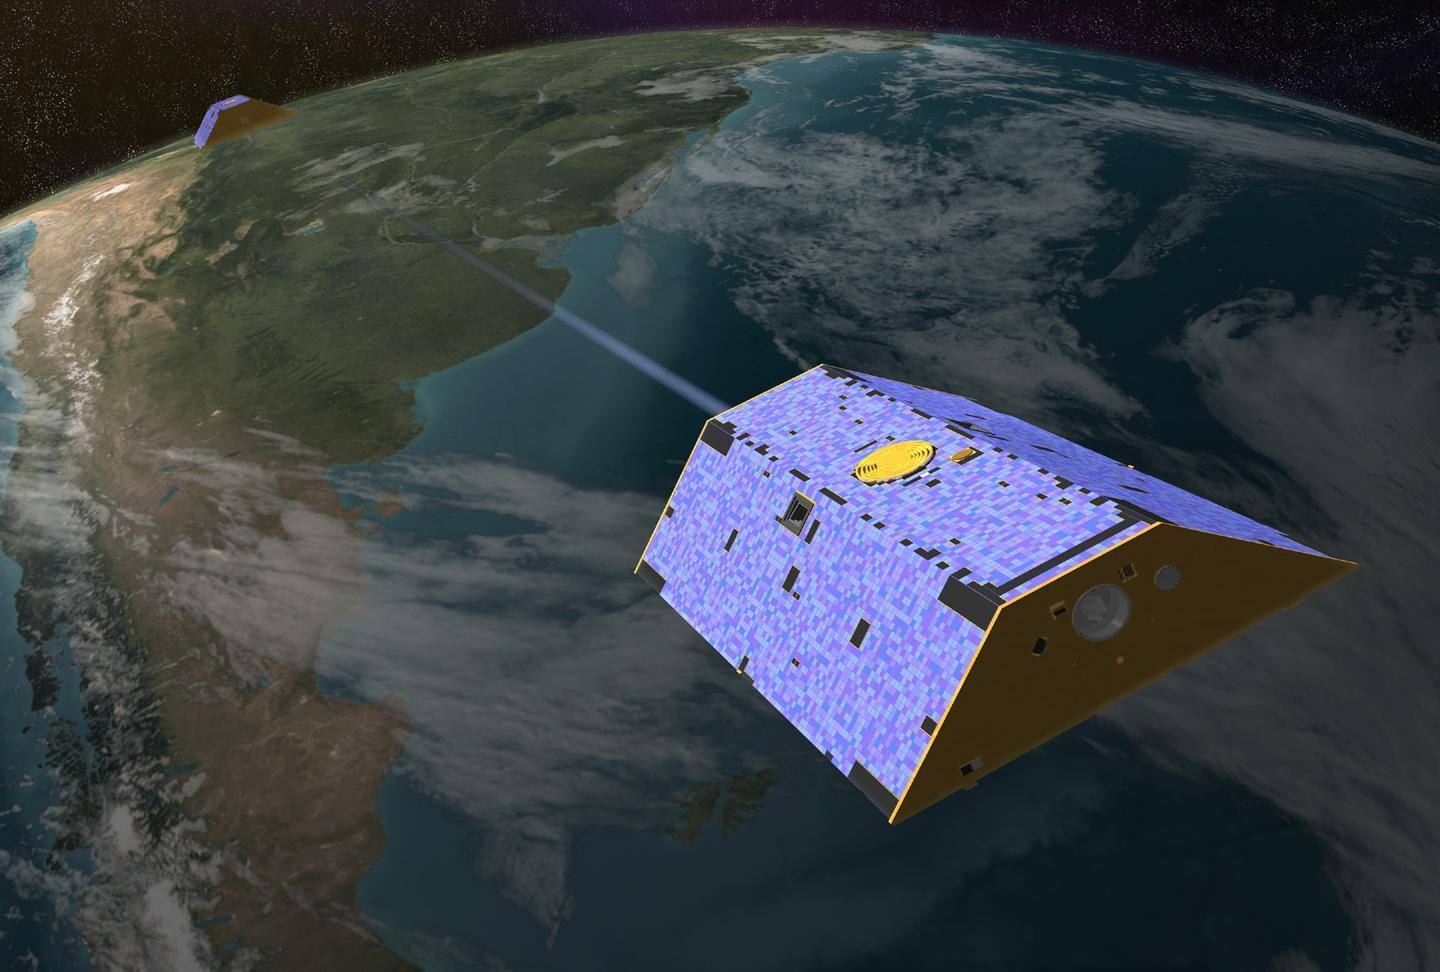 Illustration of the Gravity Recovery and Climate Experiment (GRACE) twin satellites in orbit. Credit: NASA-JPL/Caltech